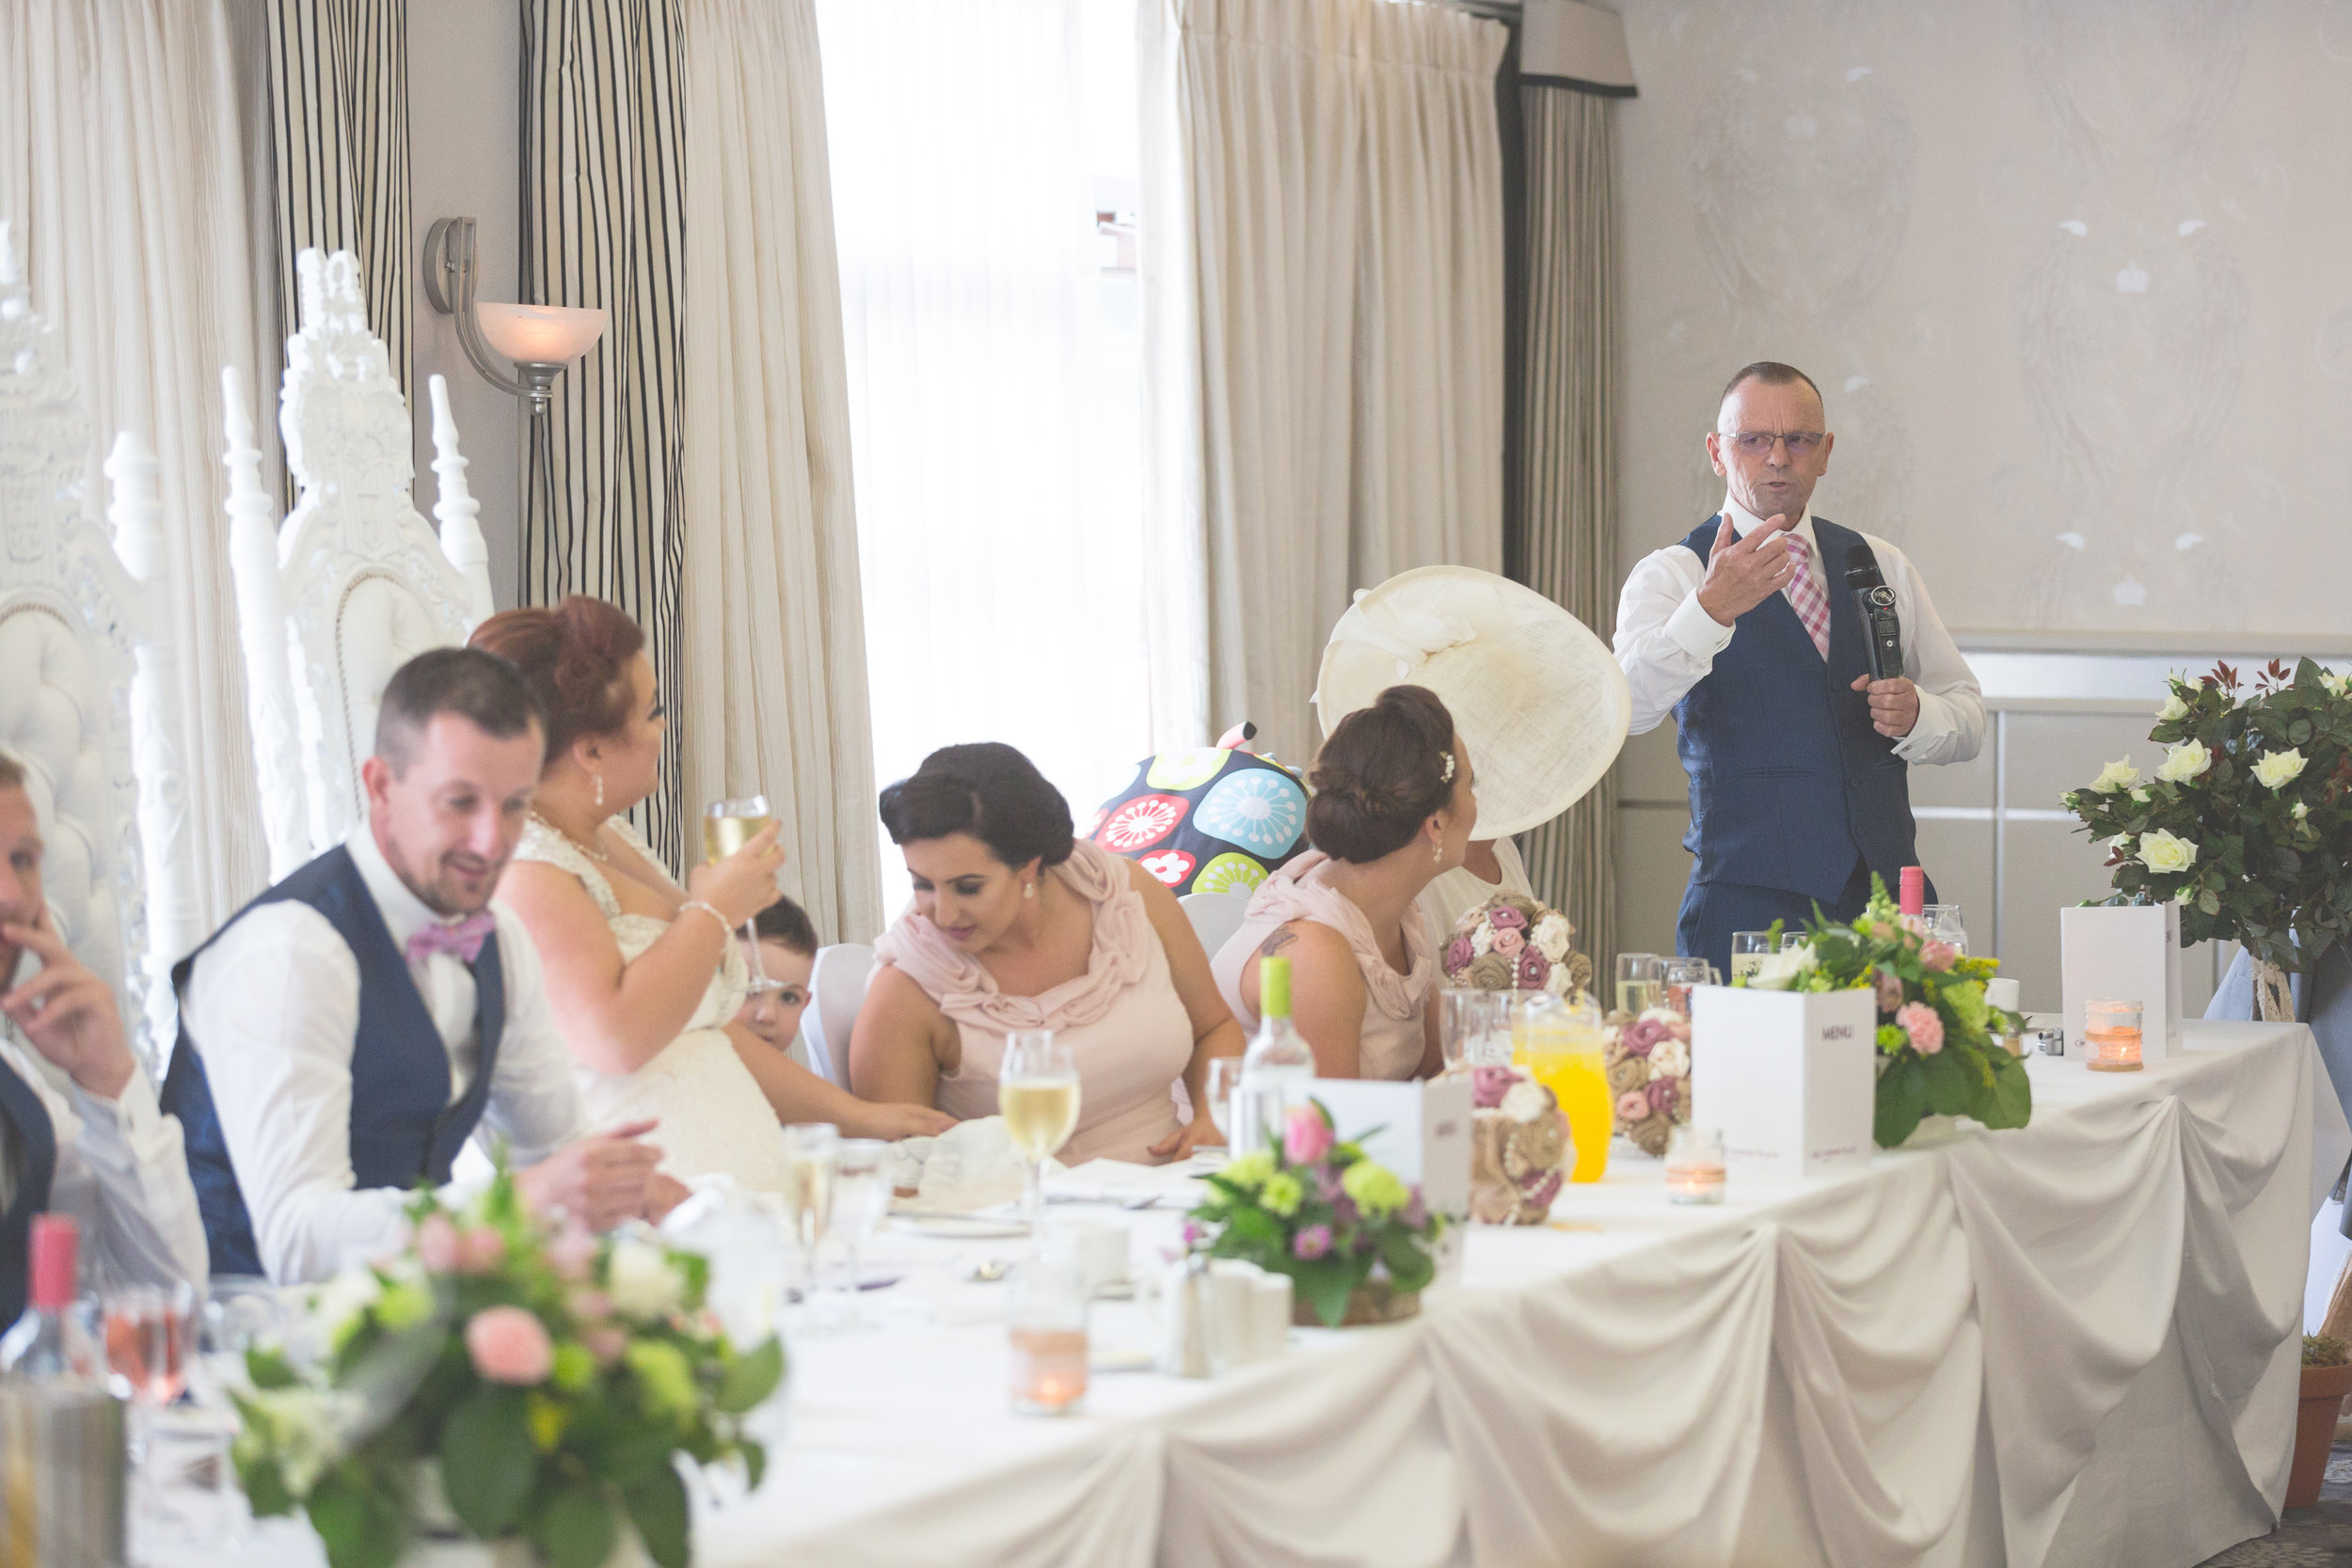 Antoinette & Stephen - Speeches | Brian McEwan Photography | Wedding Photographer Northern Ireland 20.jpg